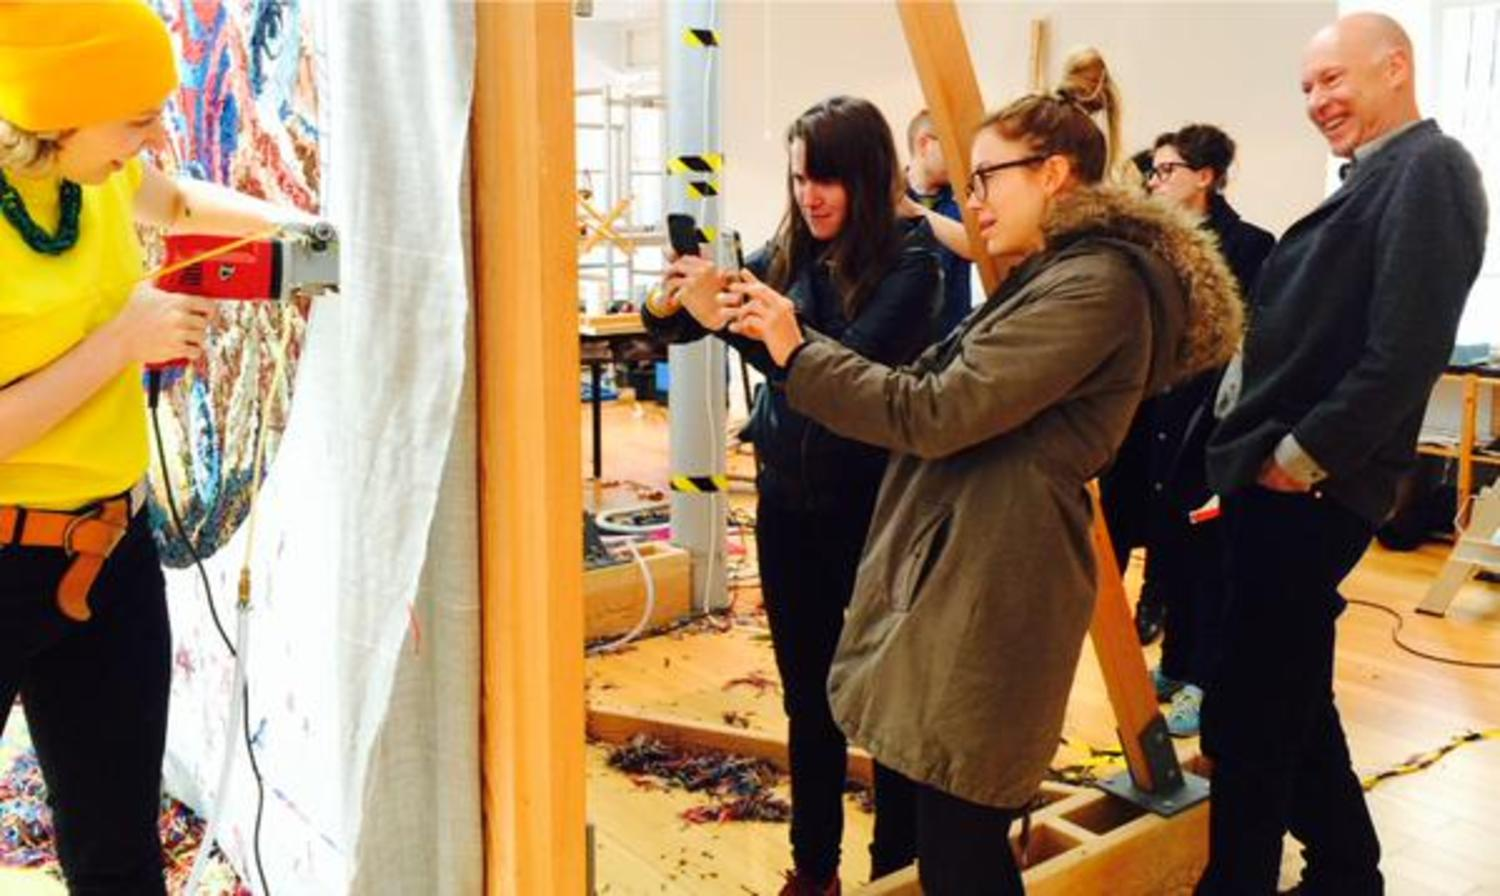 Linder creating new work with Dovecot for British Art Show 8